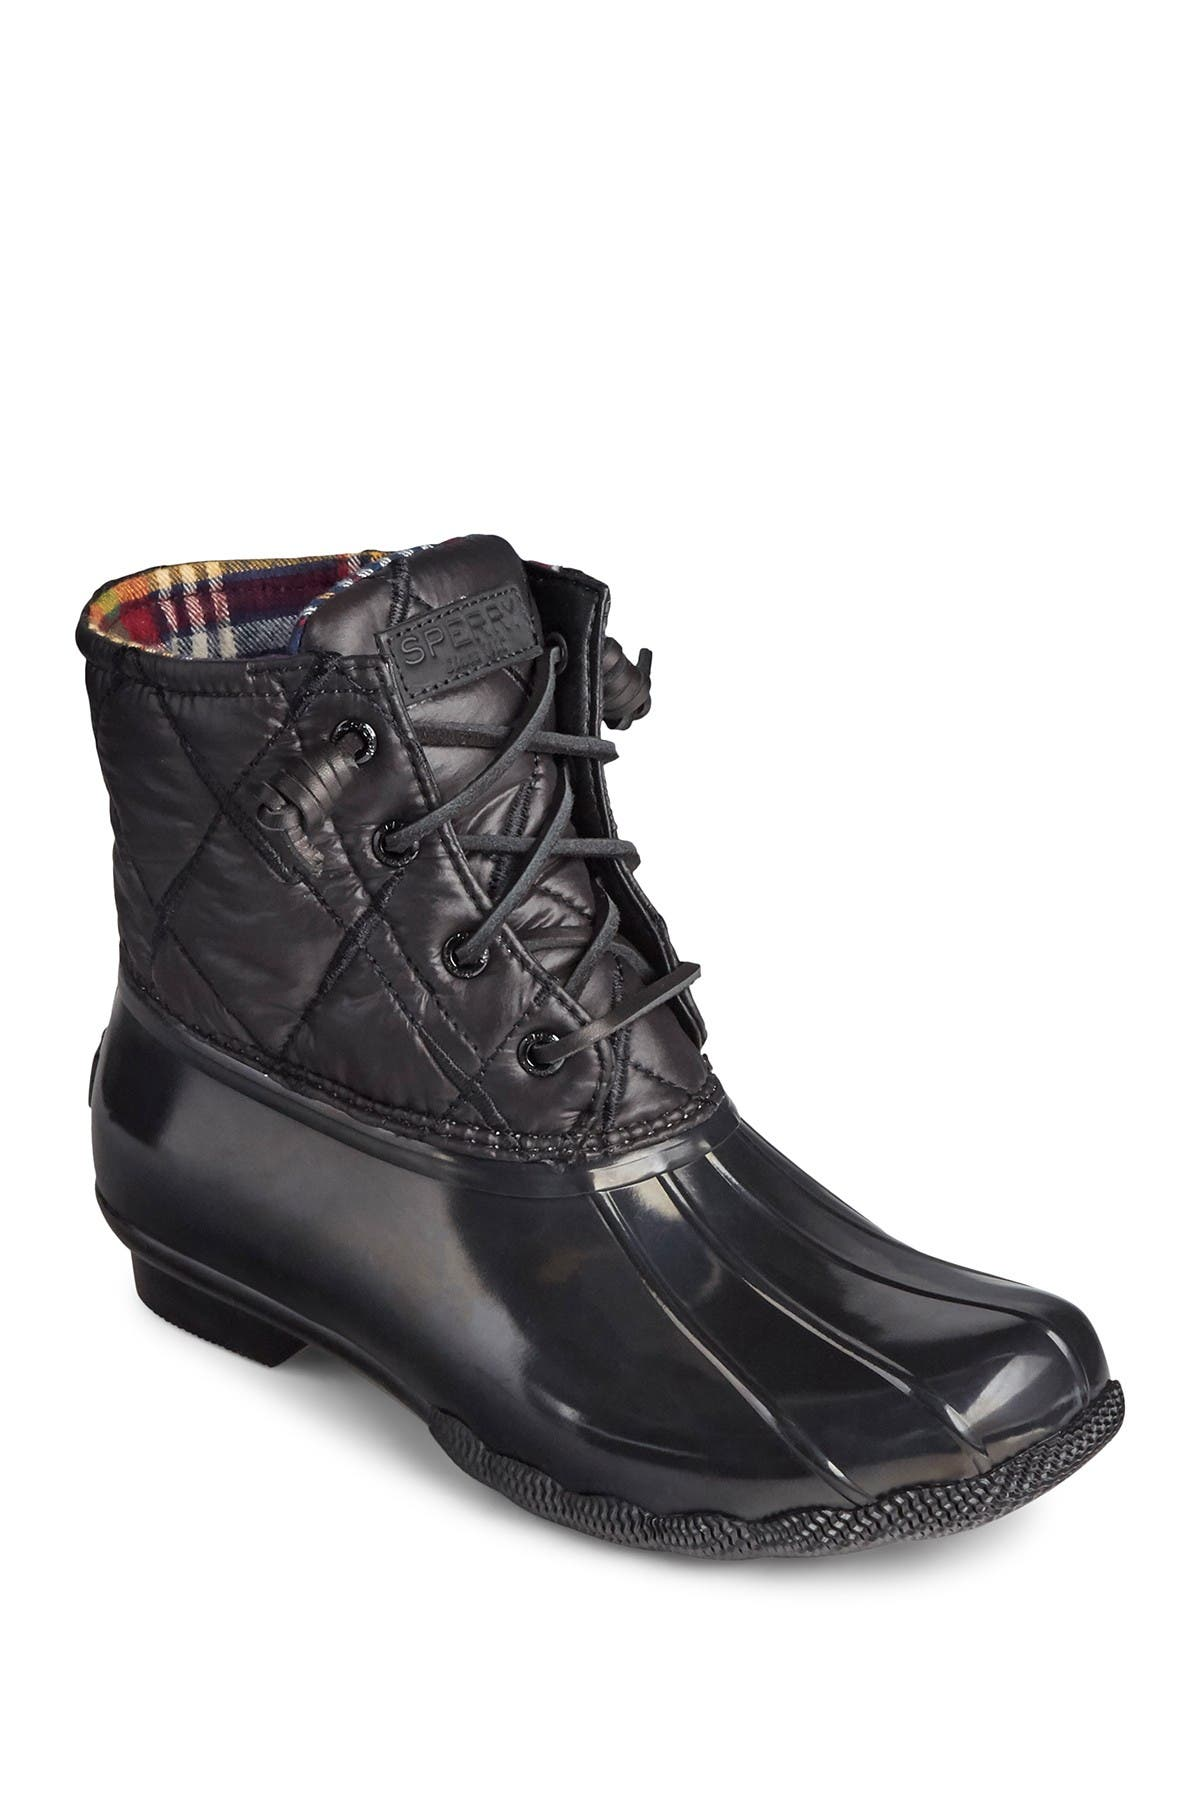 Saltwater Nylon Quilted Duck Boot